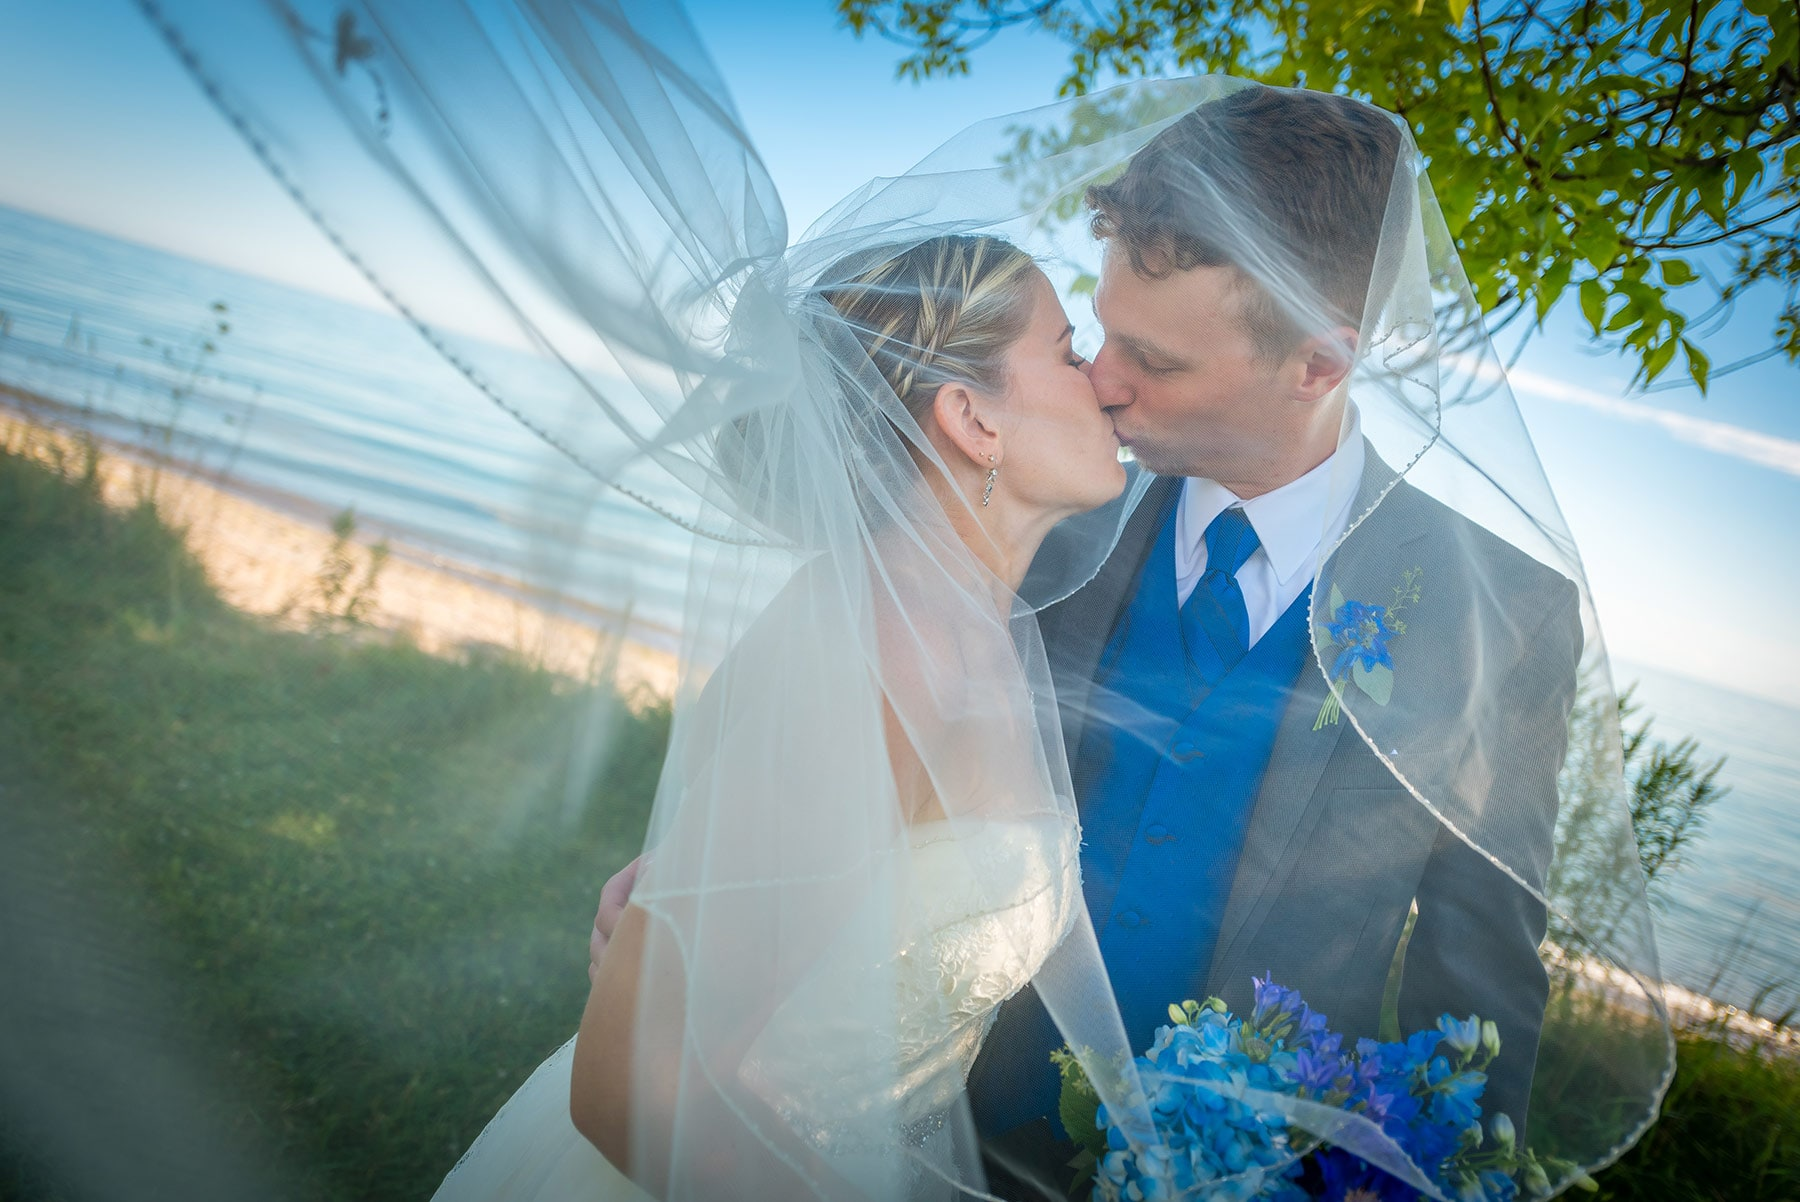 Wedding photography with blowing veil